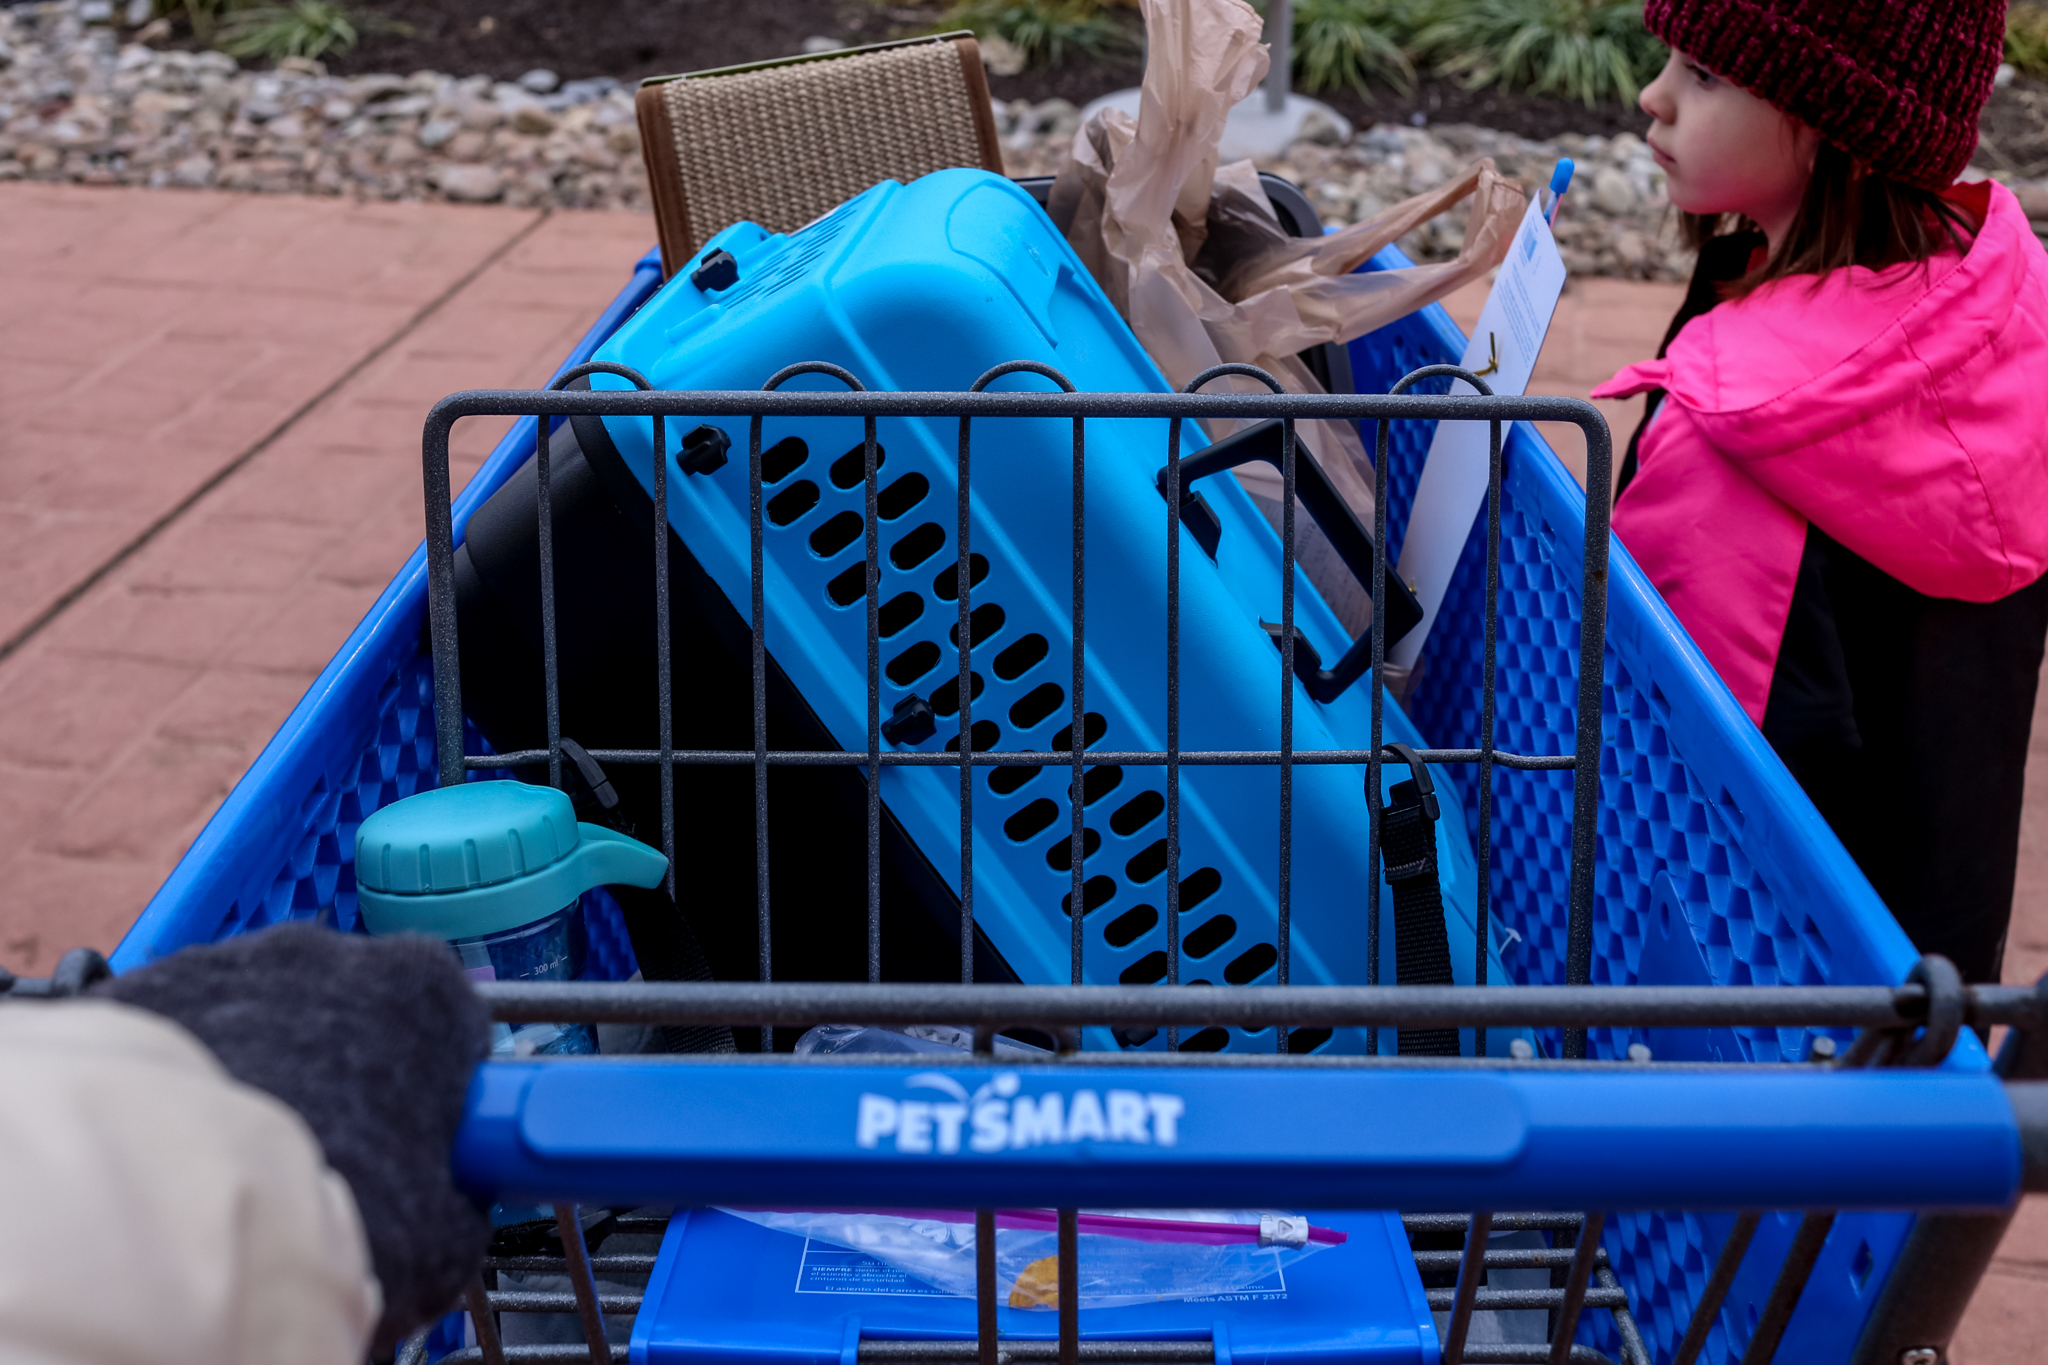 Purchasing supplies from PetSmart in Trexlertown, PA, in anticipation of the adoption of a kitten into the family.